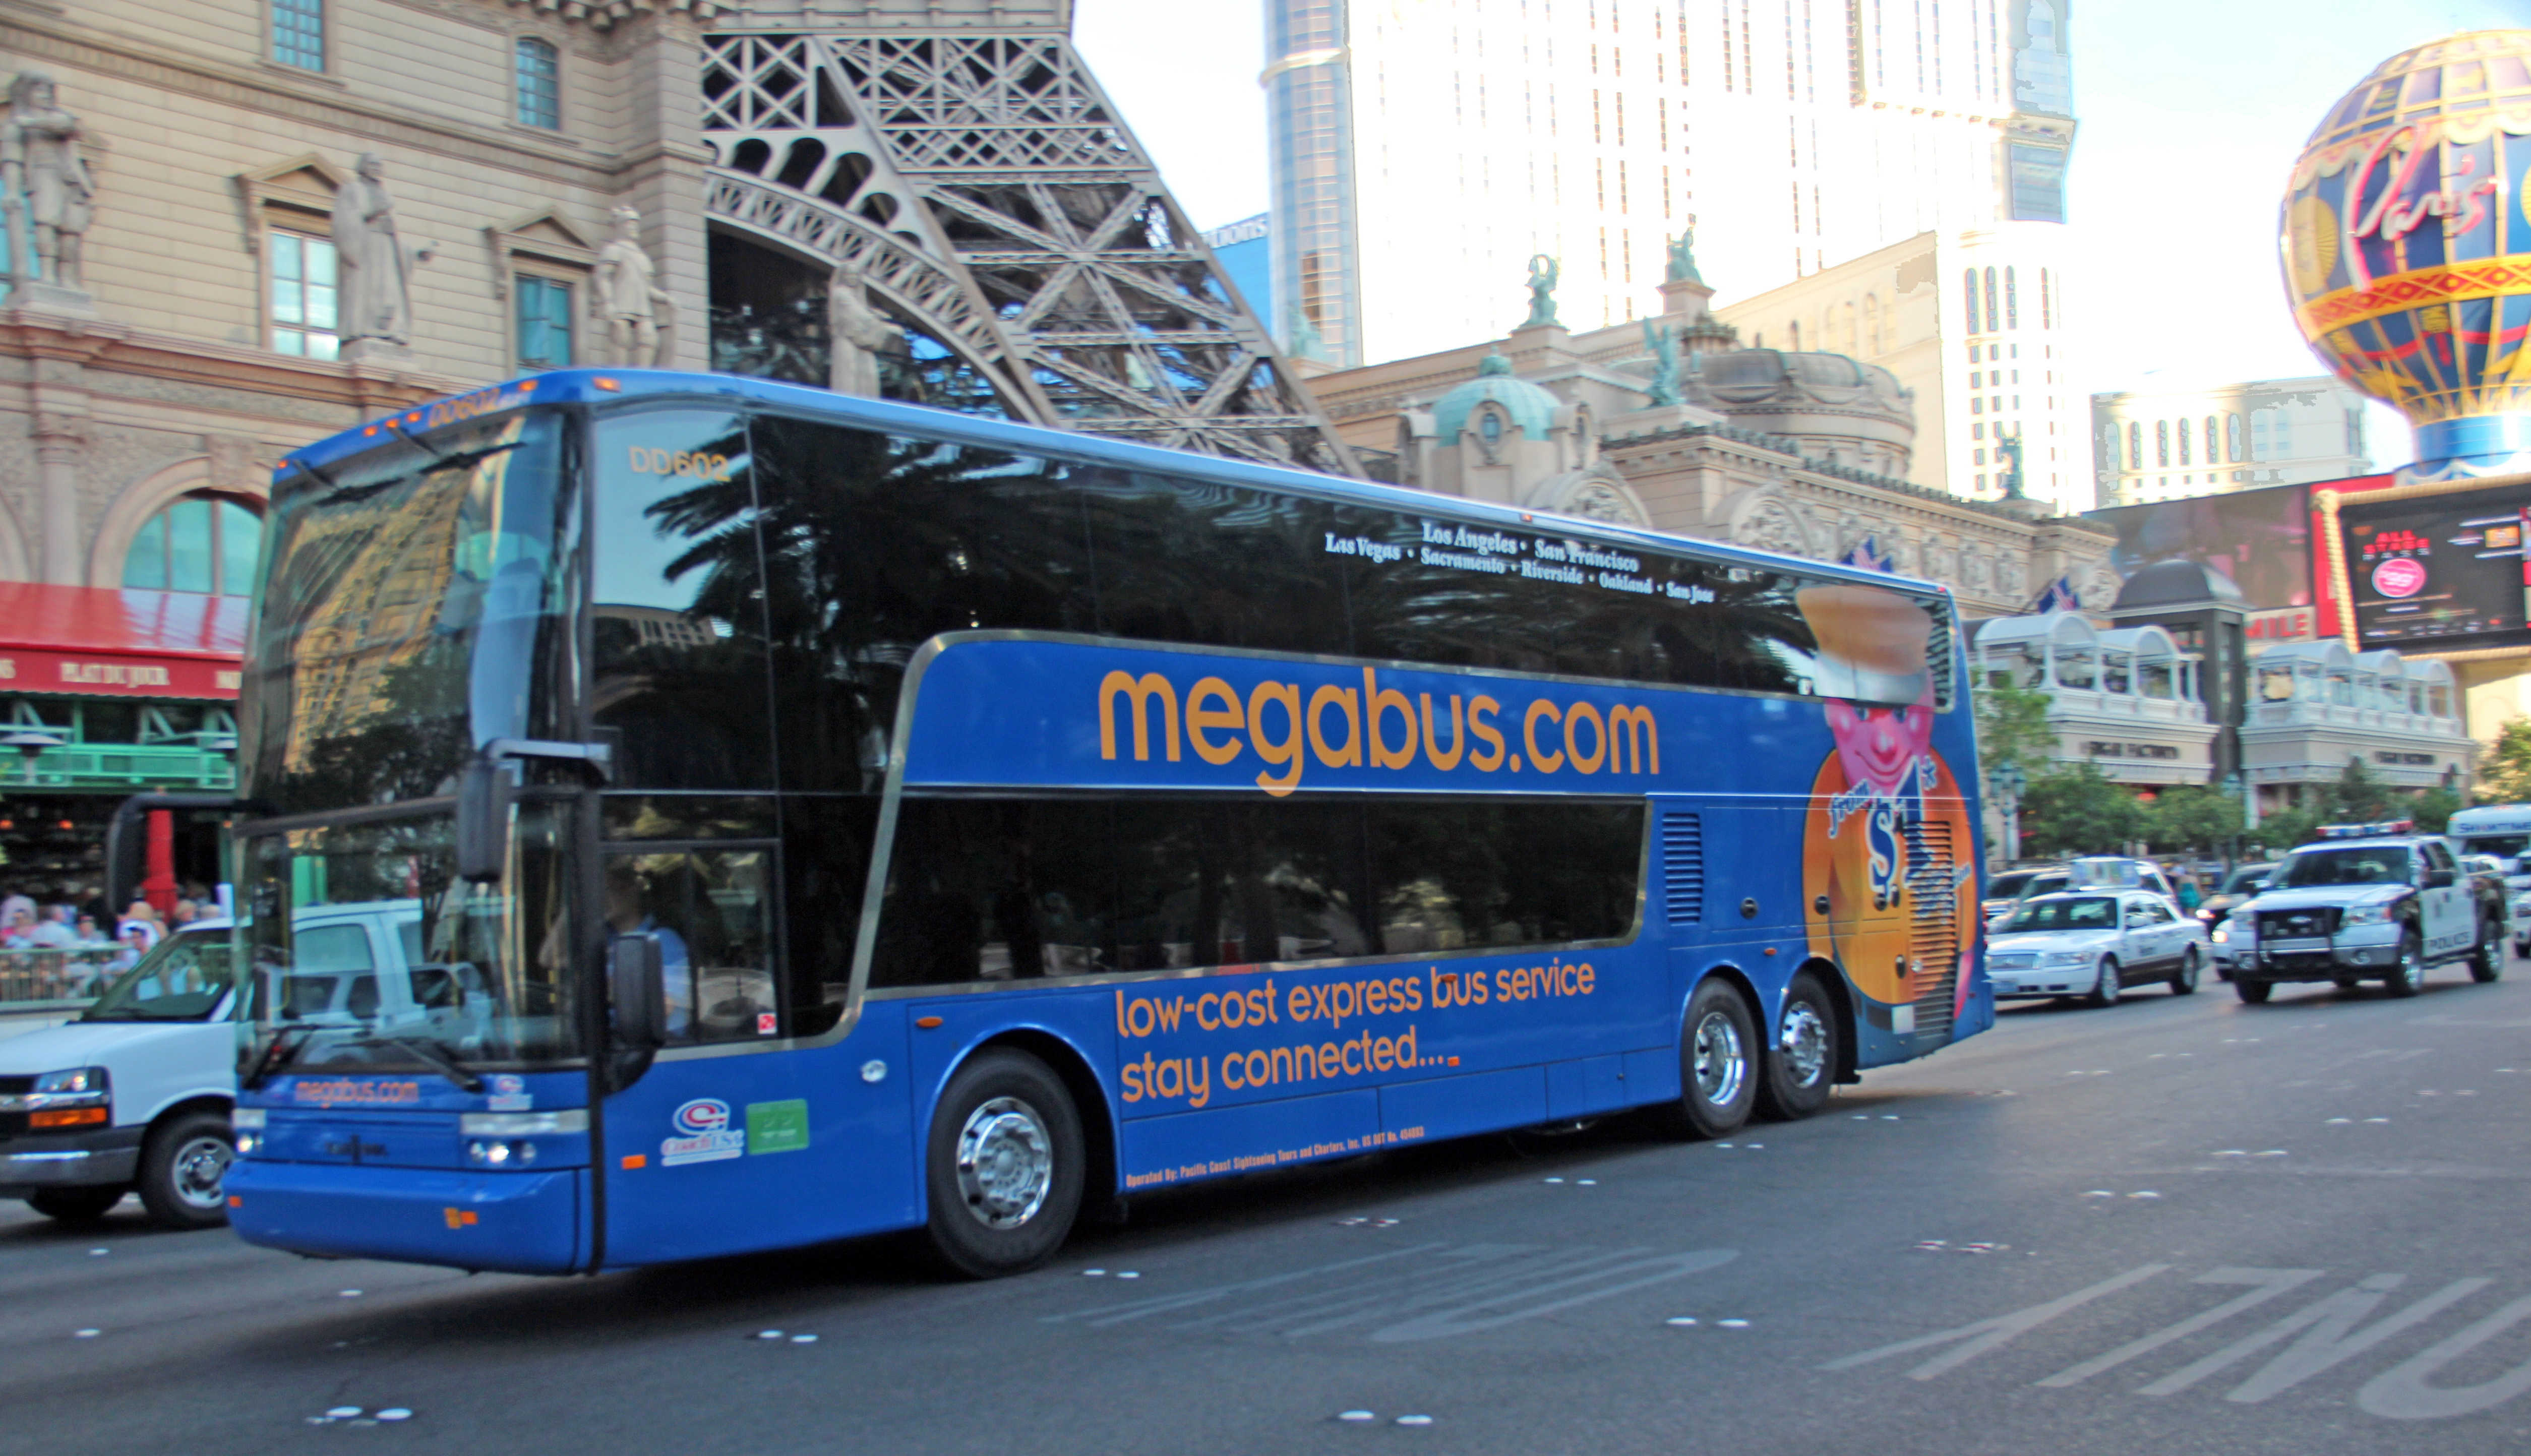 Toyota Of New Orleans >> Travel & Tips using MegaBus - Work Smart and Travel